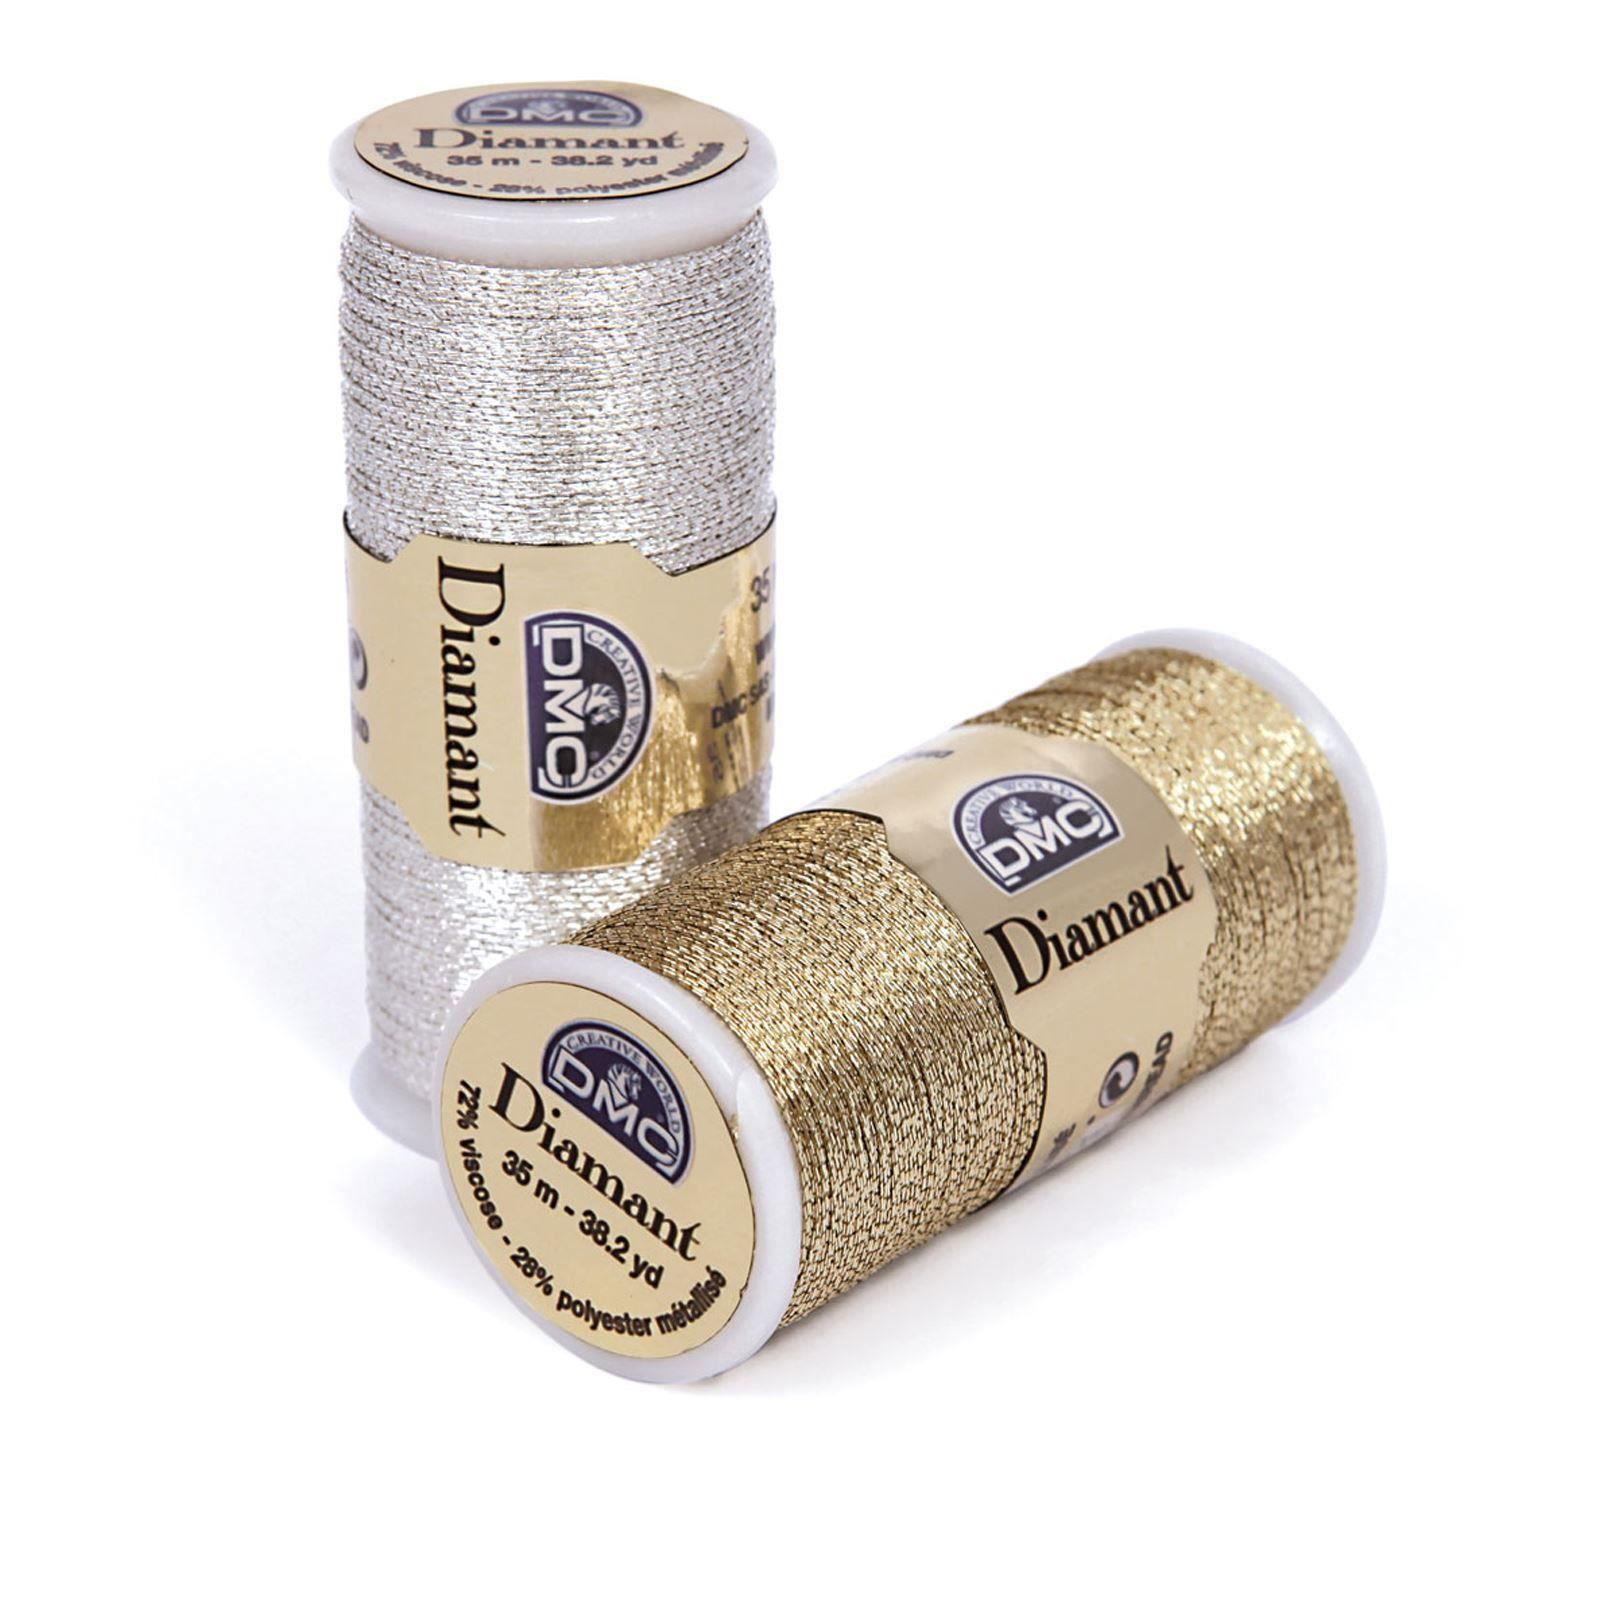 DMC-Diamant-Metallic-Embroidery-Thread-35m-Spool-Cross-Stitch thumbnail 16